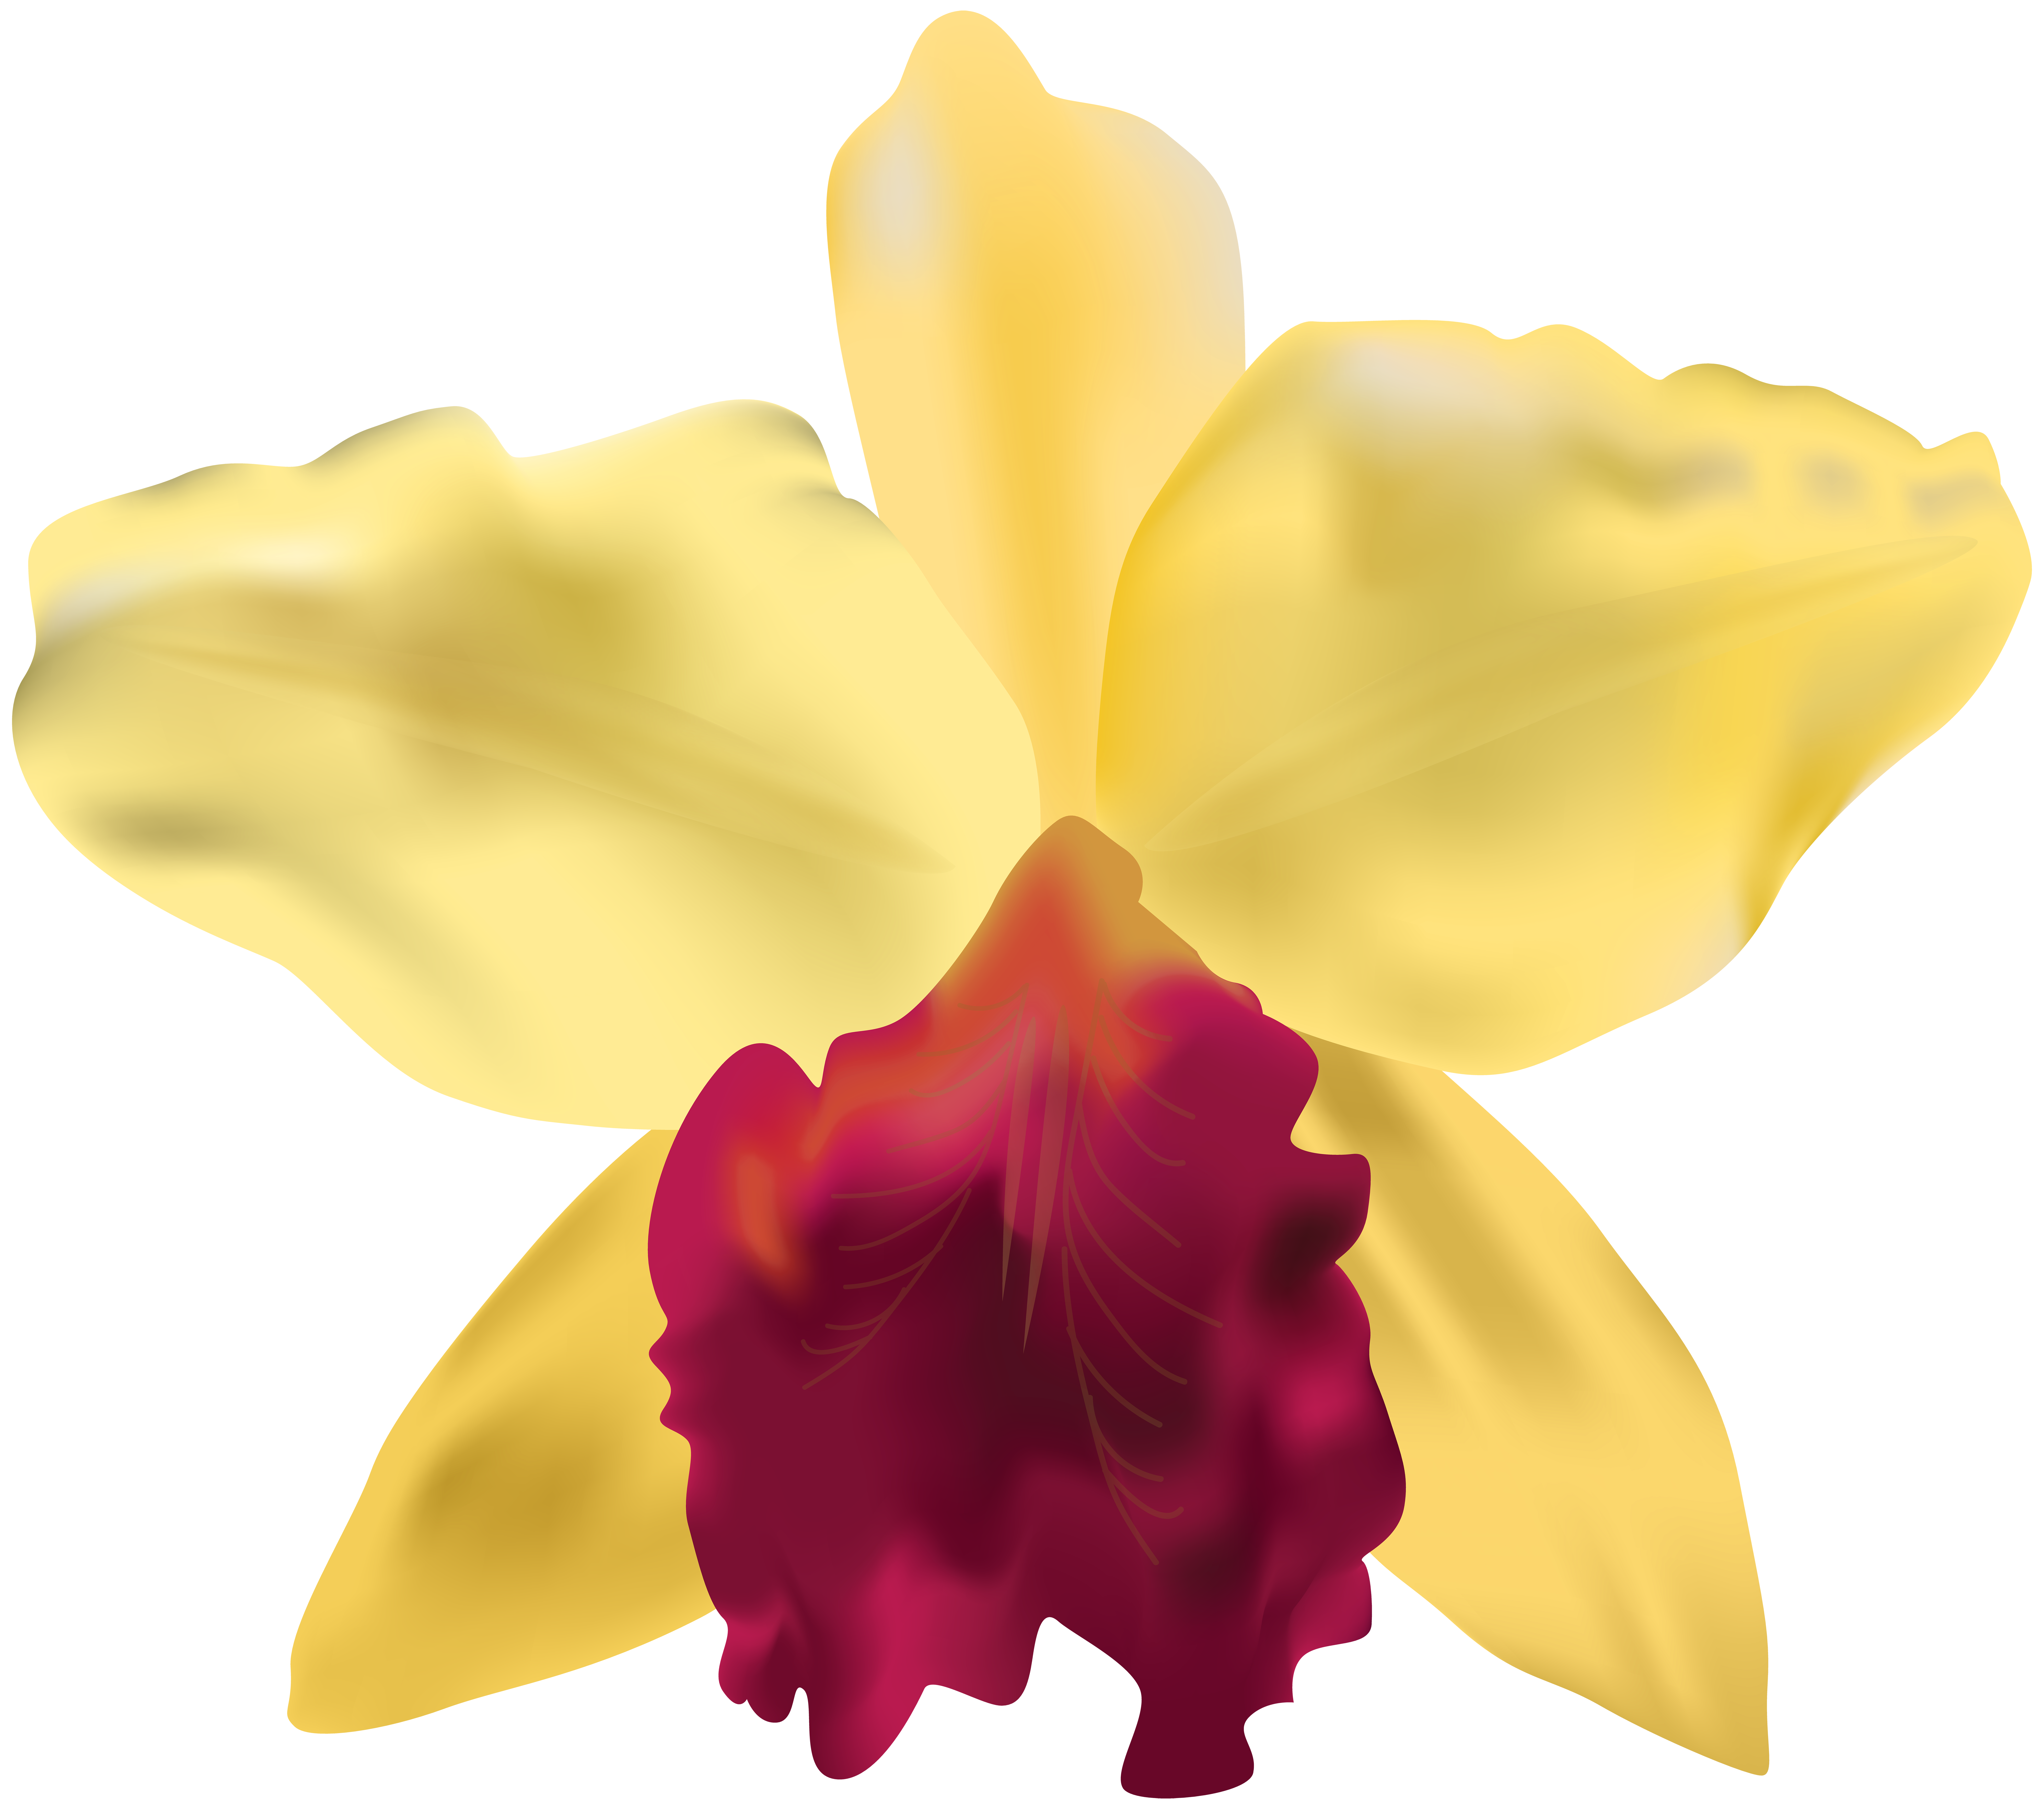 Flower at getdrawings com. Orchid clipart simple